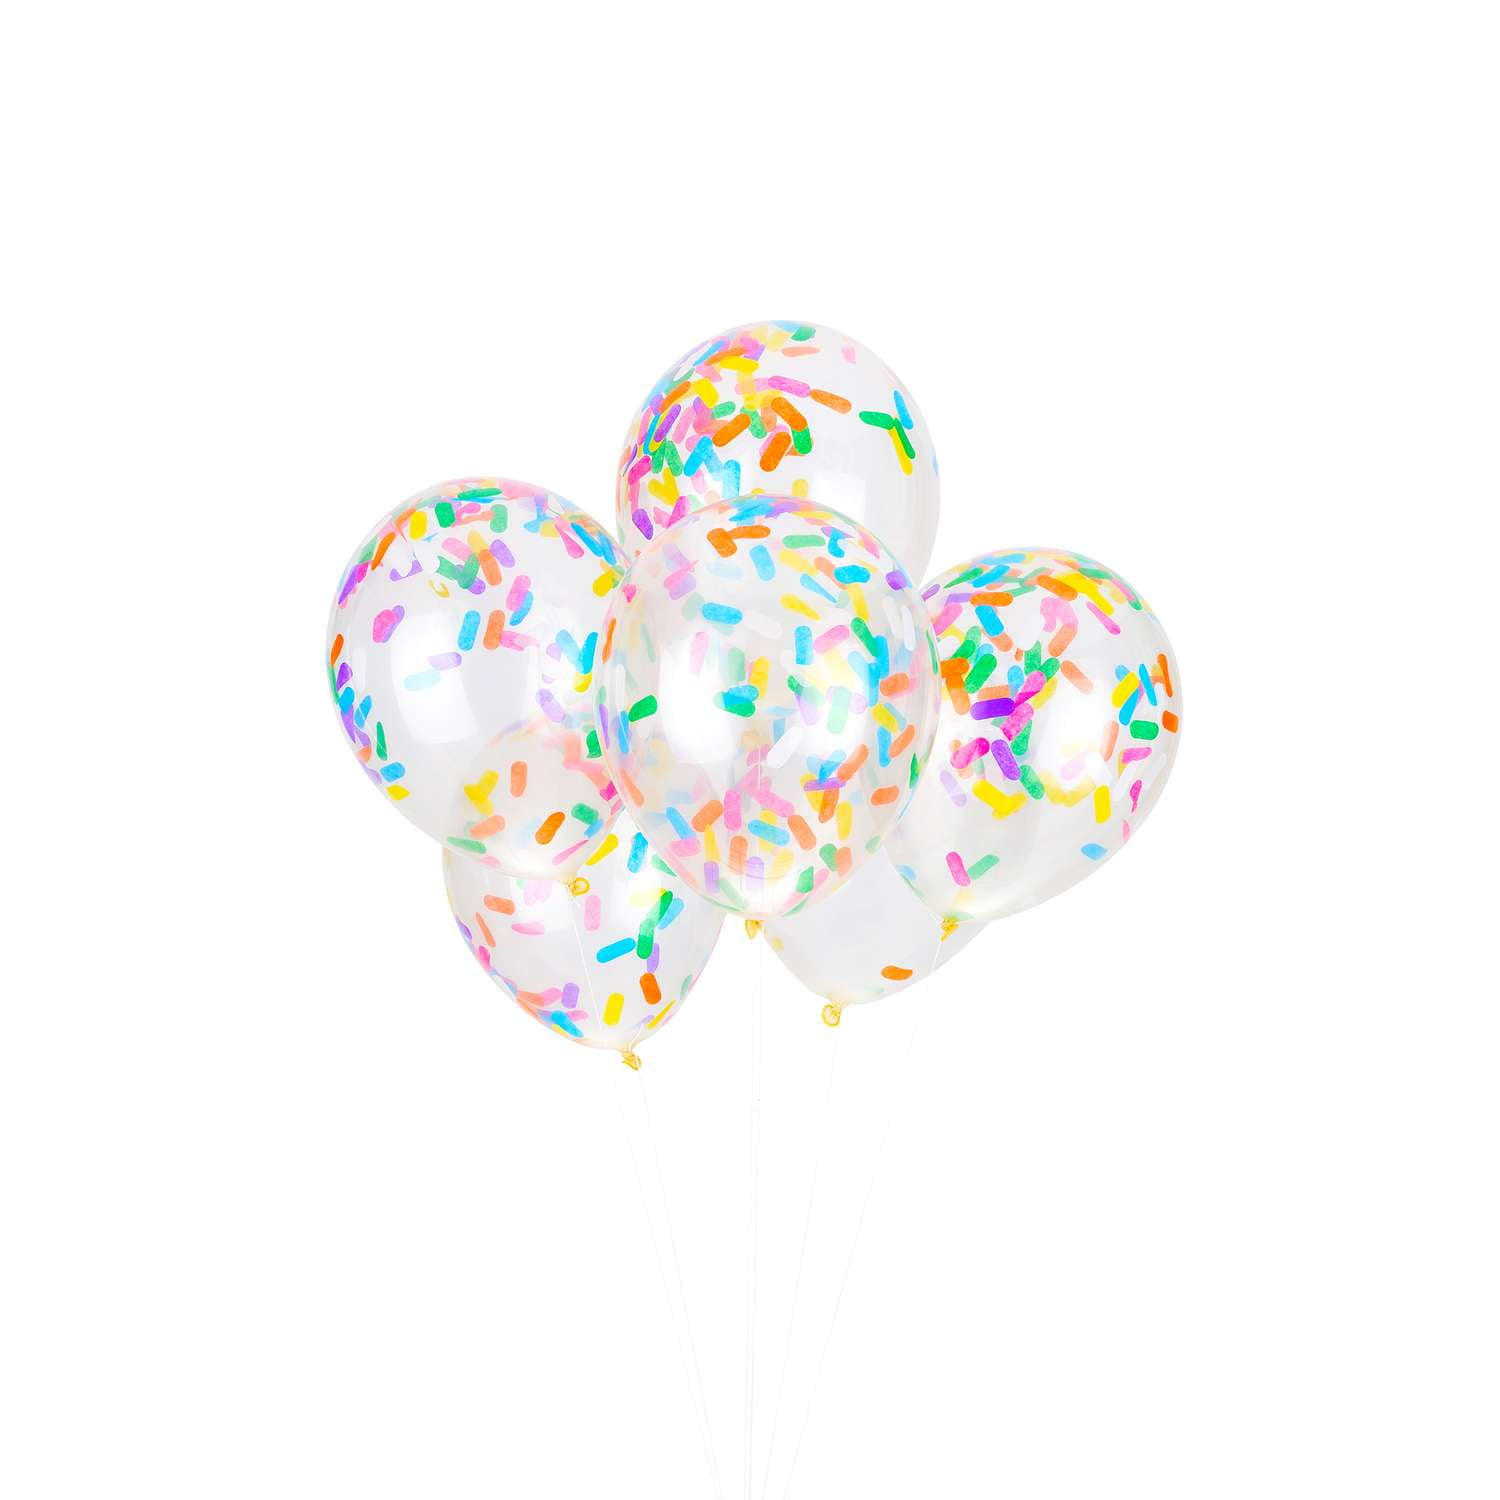 Ice Cream Bright Sprinkles Confetti Balloon Bouquet